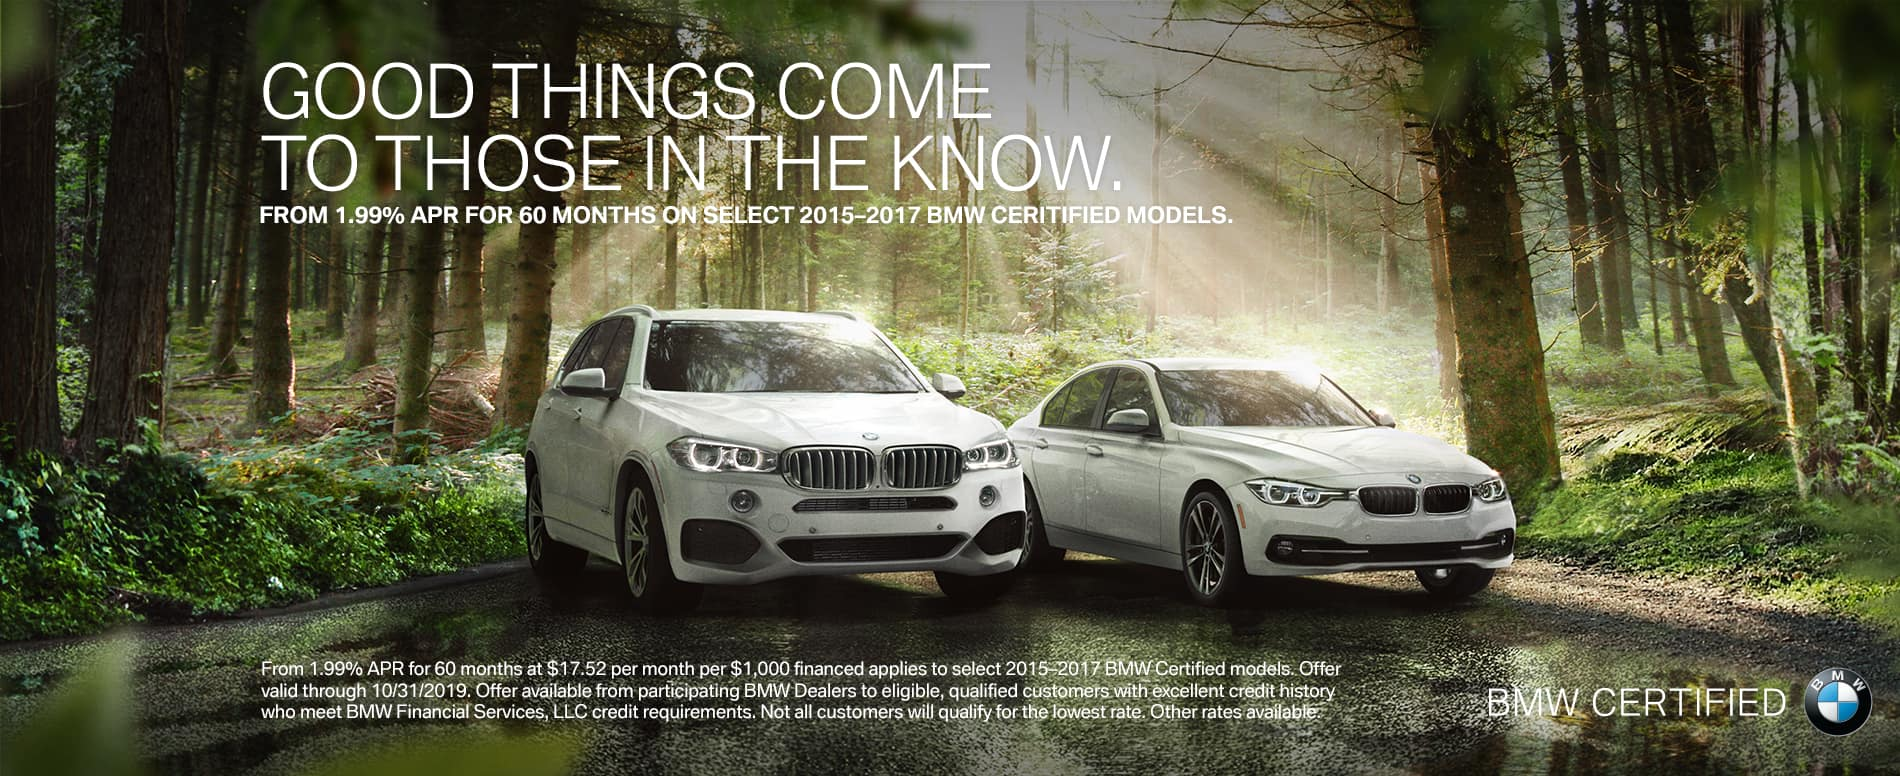 Tulley BMW of Nashua | BMW Dealer in Nashua, NH